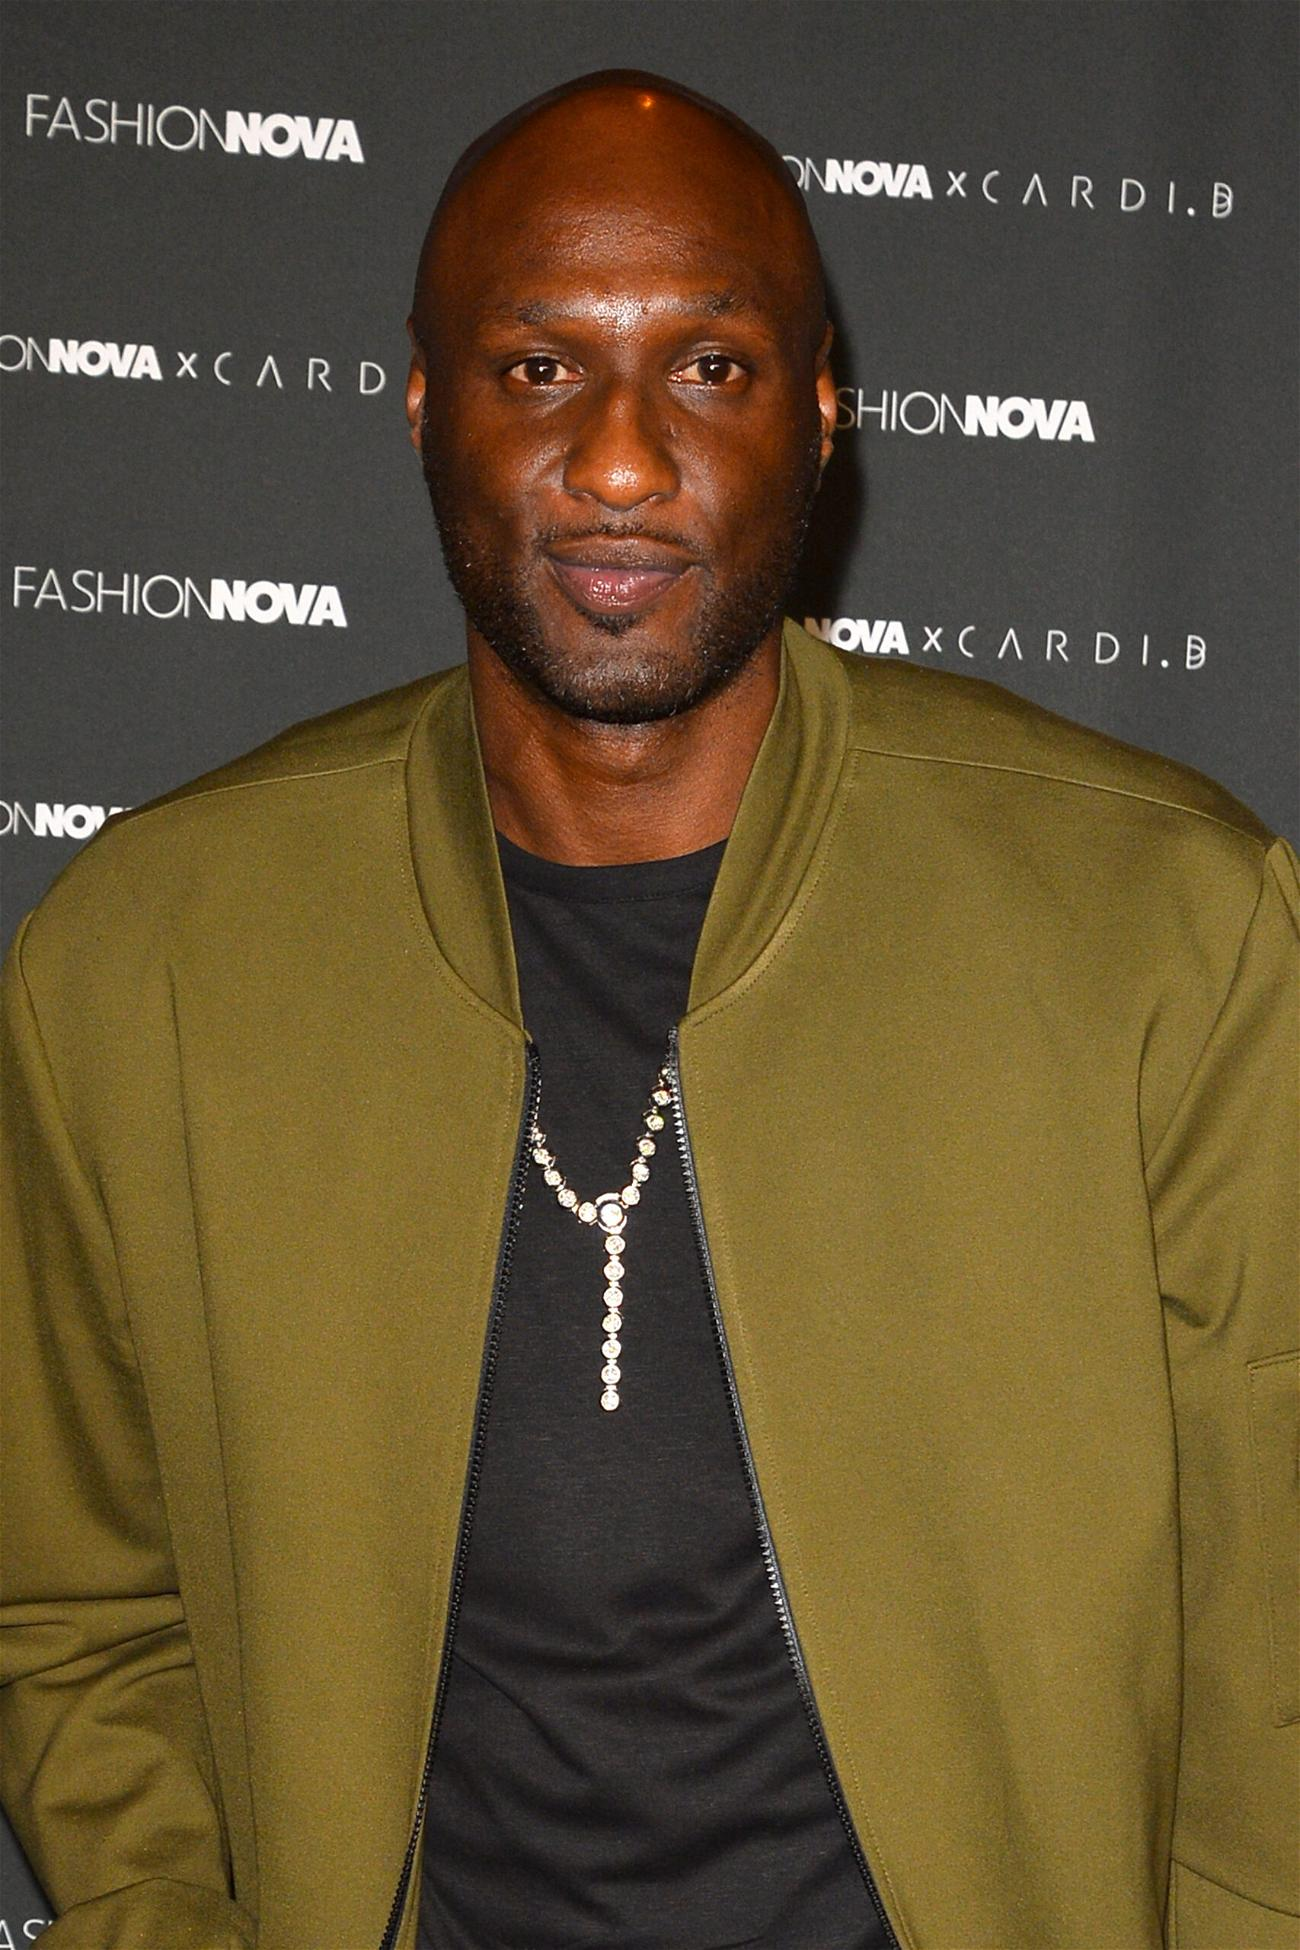 Lamar Odom Cancels Appearance Due To Exhaustion and Dehydration